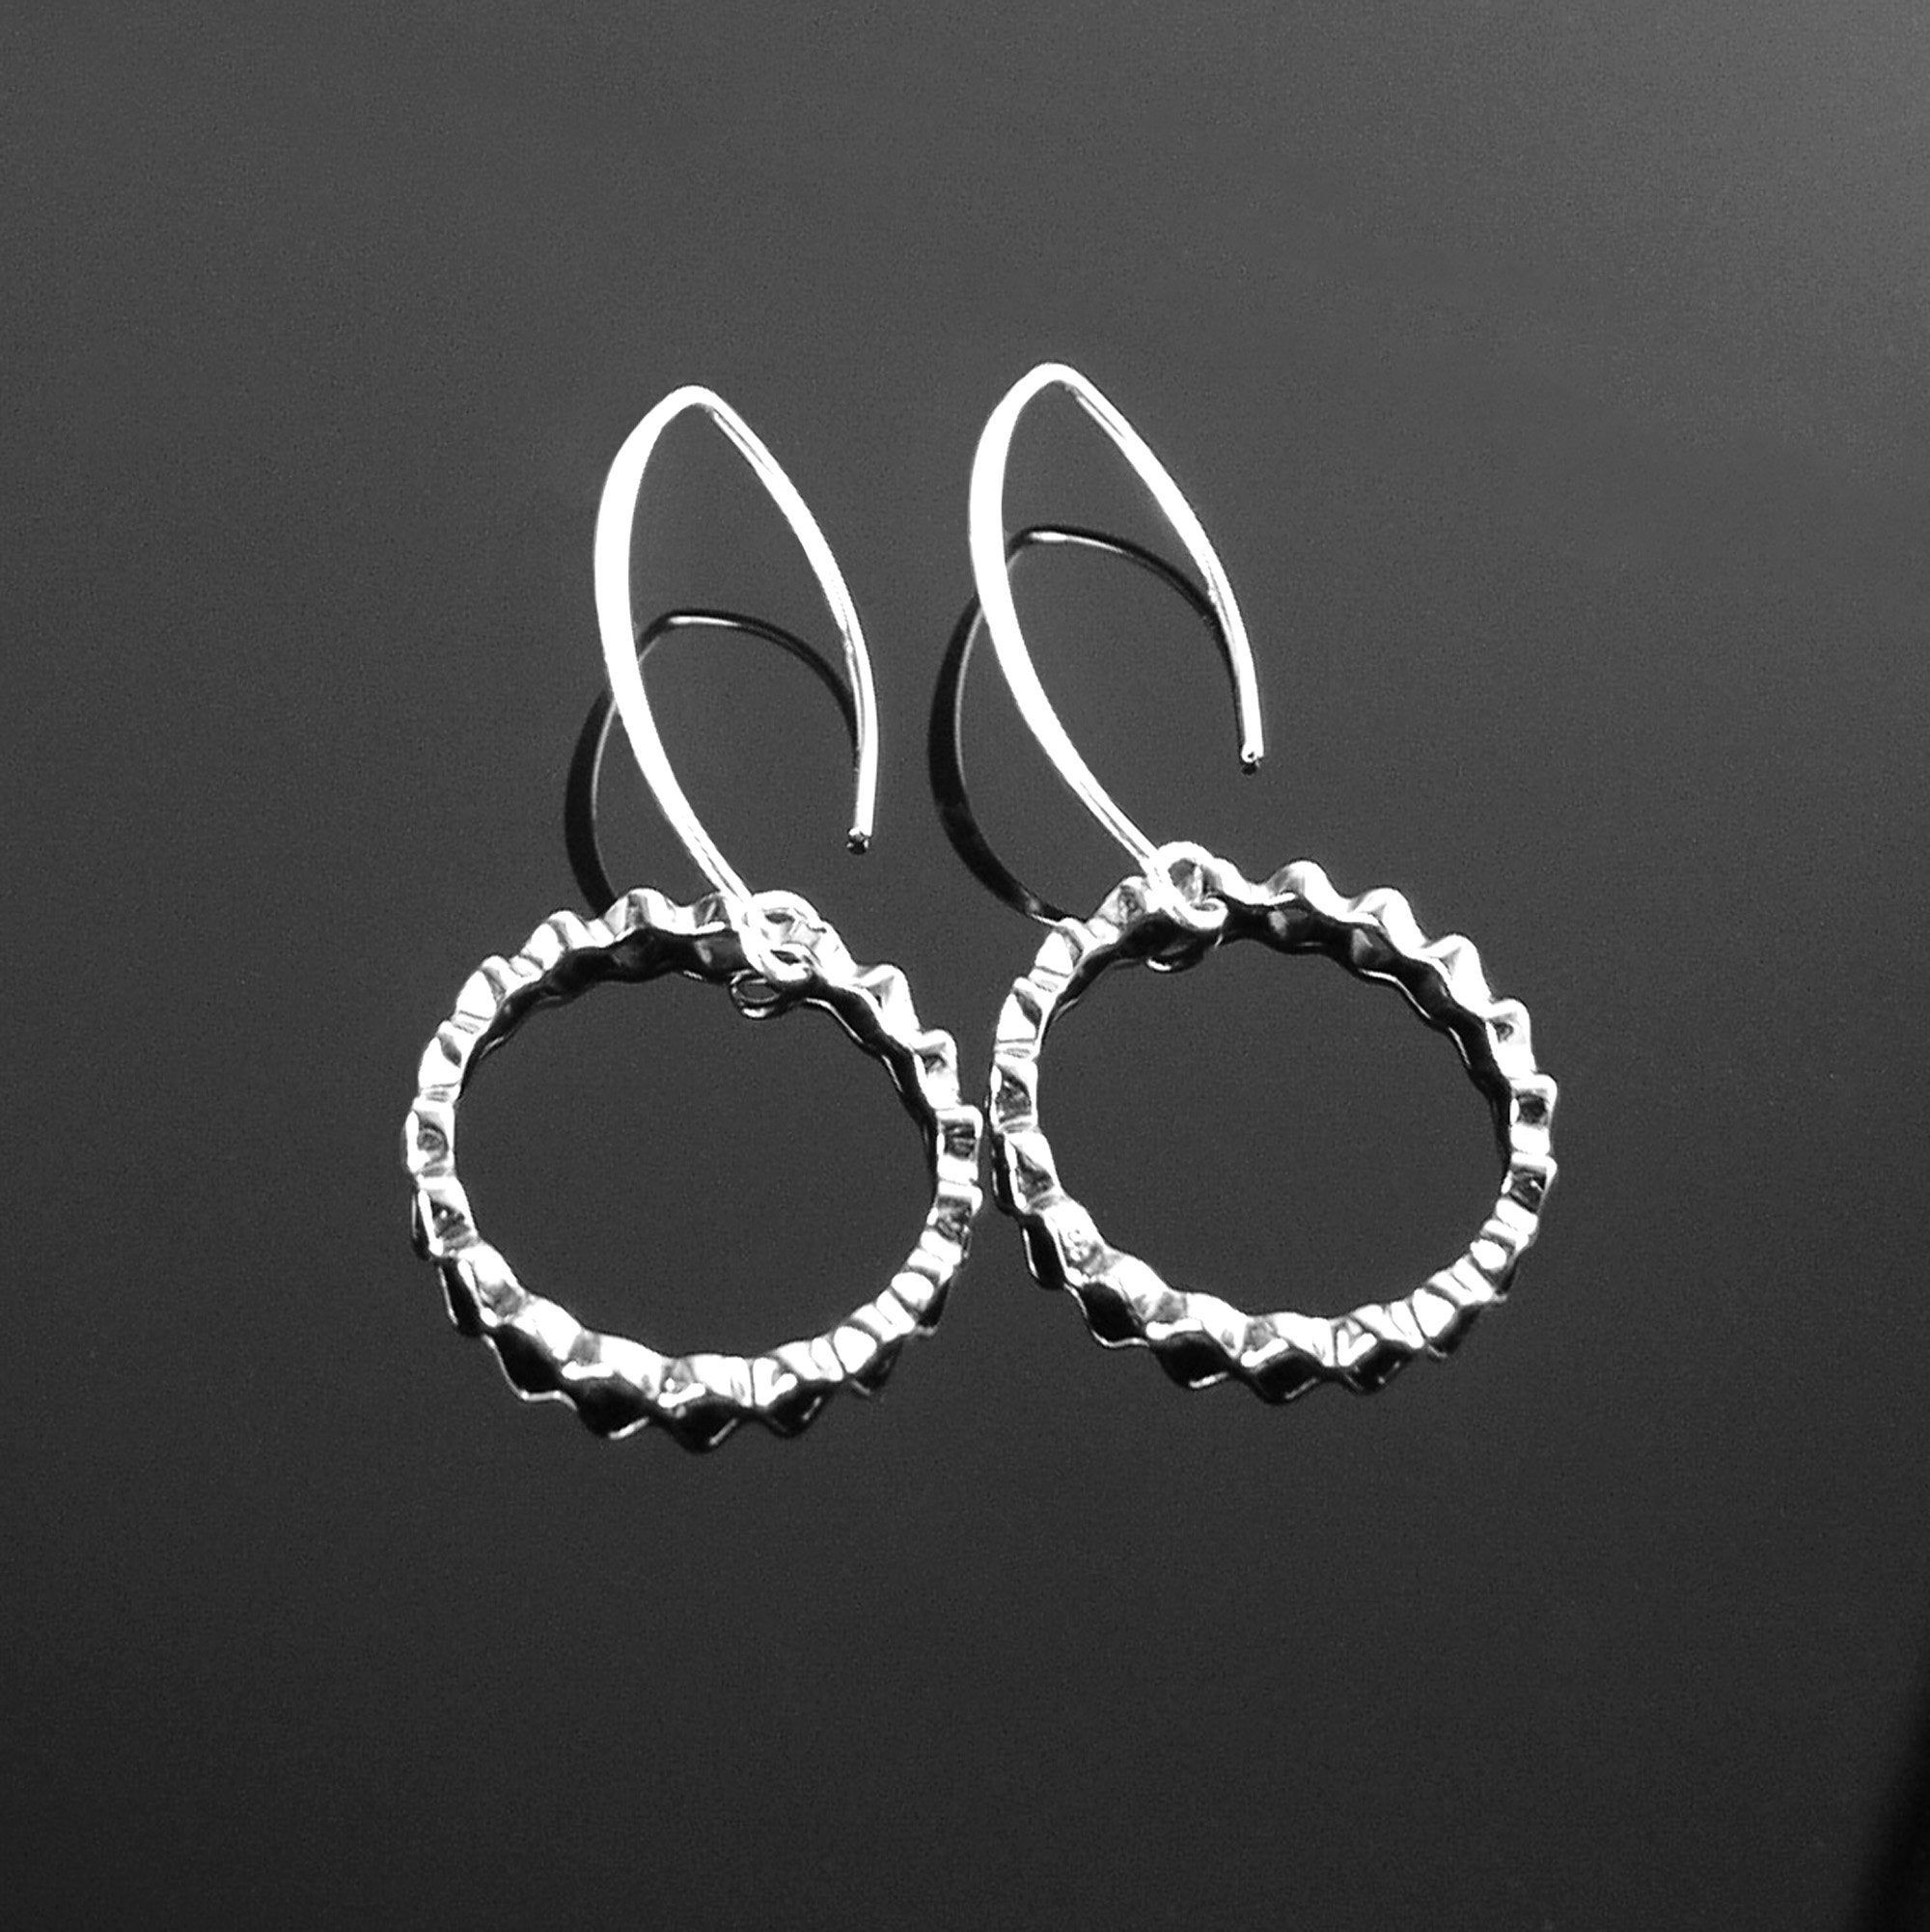 Unique Sterling Silver Long Earrings Textured Silver Earrings Hoop Style Drop Earrings